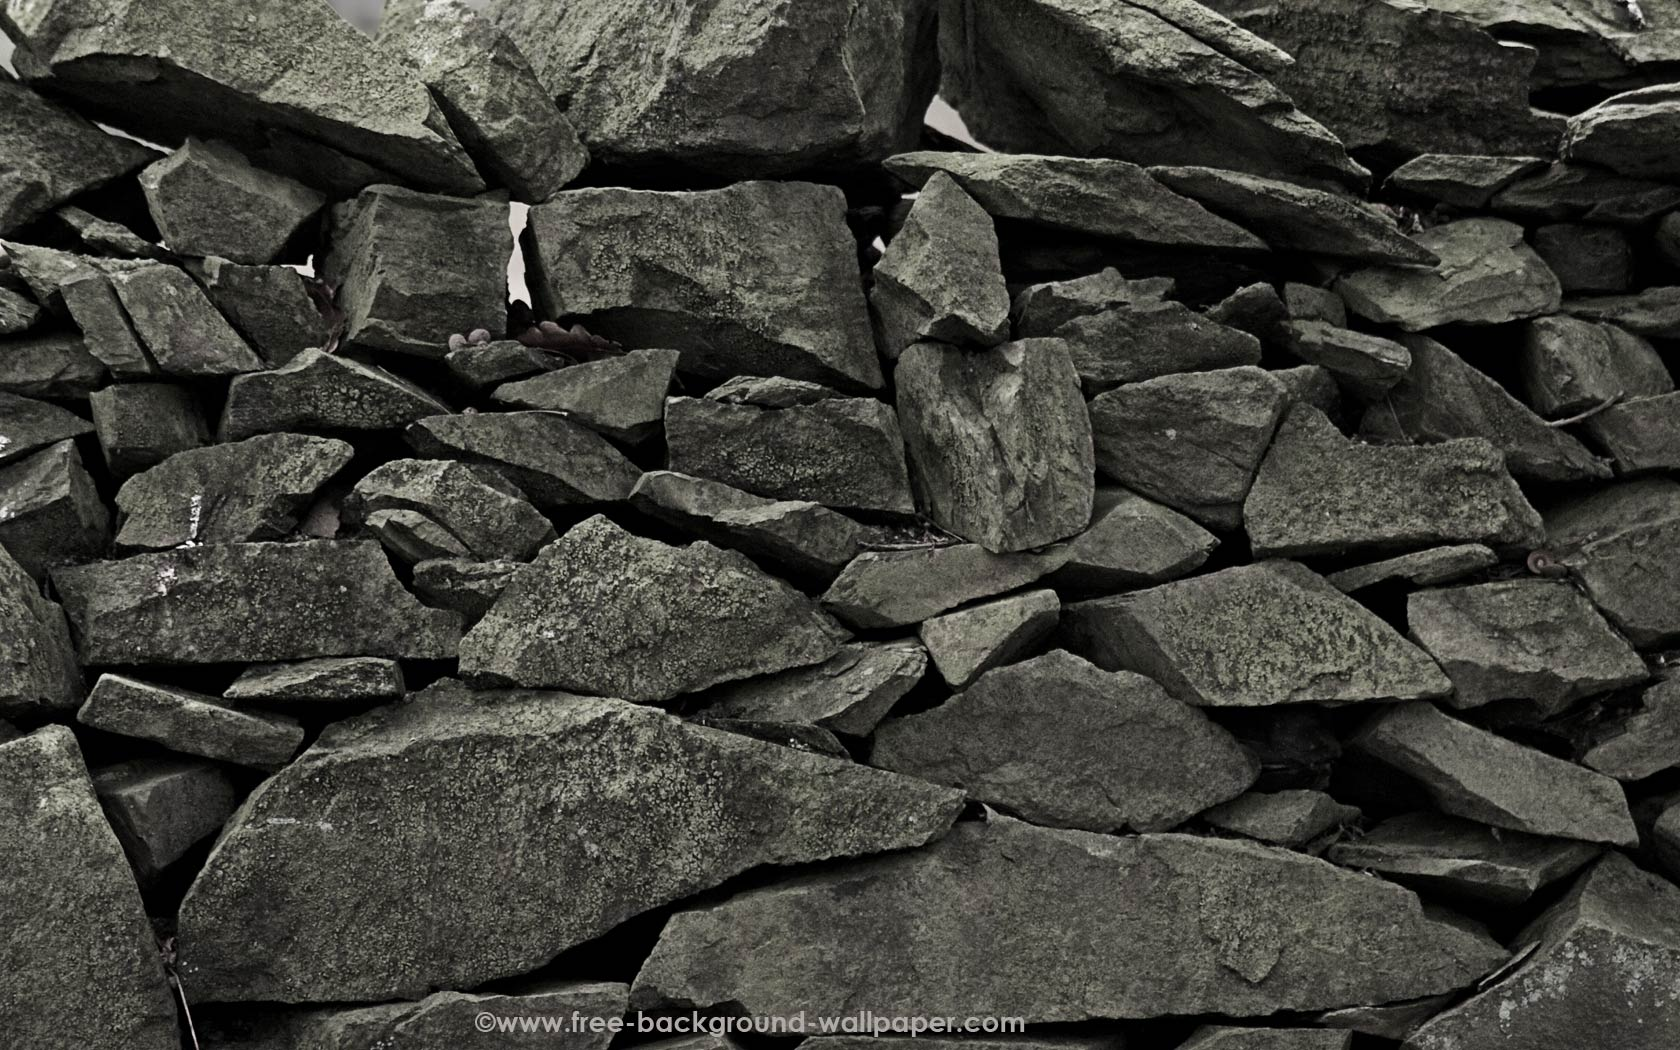 Grey Dry Stone Wall - Stone Background Wallpaper - 1680x1050 pixels